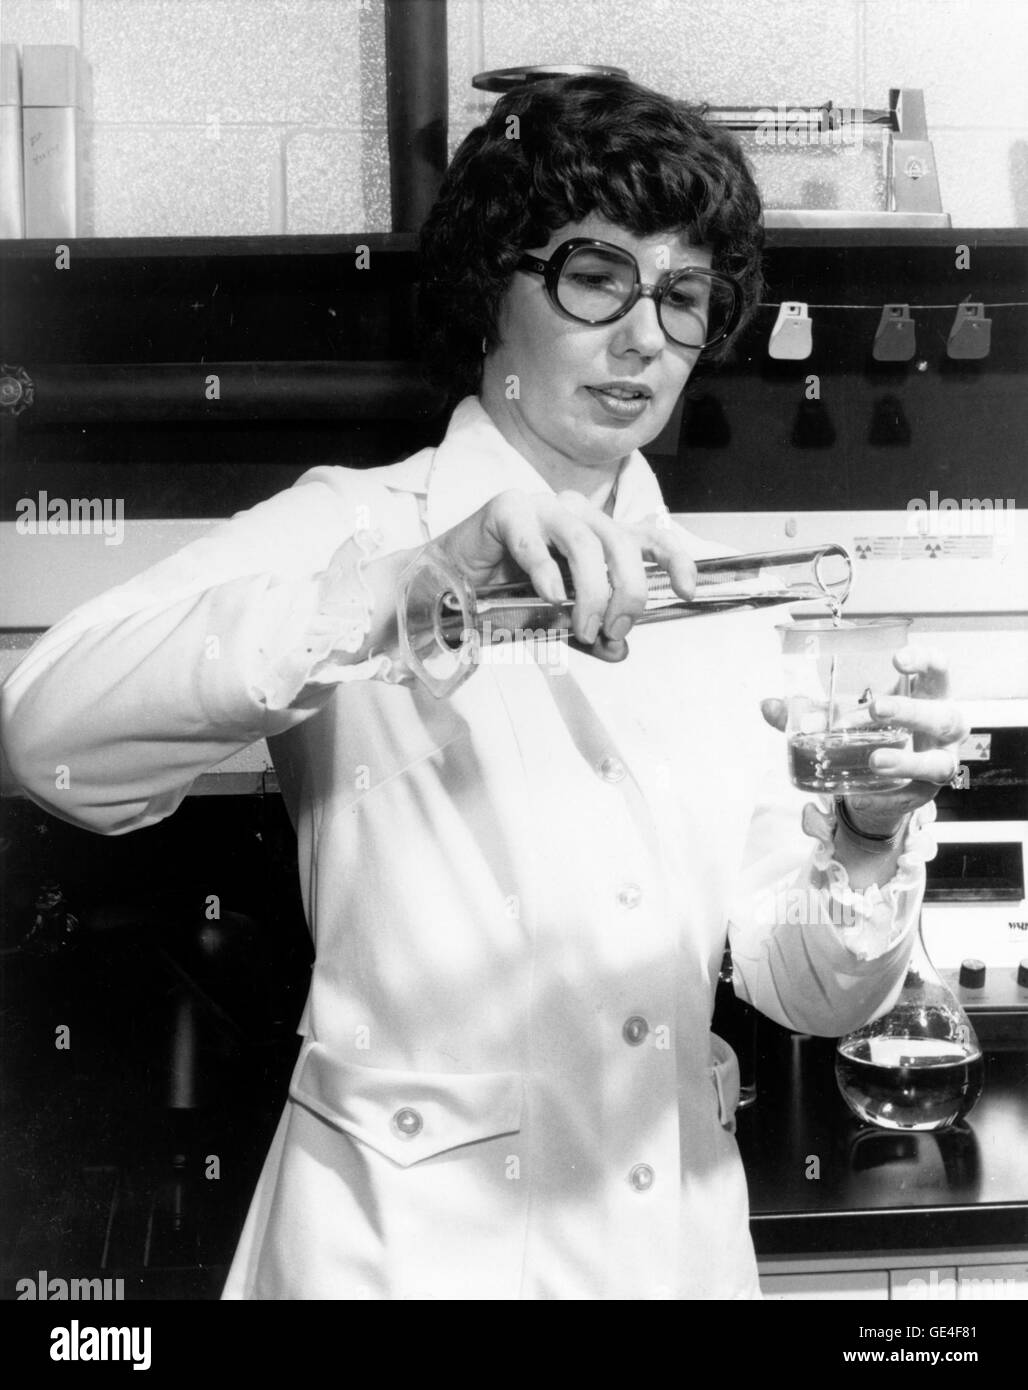 (1978) NASA hired Barbara S. Askins, a chemist at NASA's Marshall Space Flight Center, Huntsville, Alabama, - Stock Image